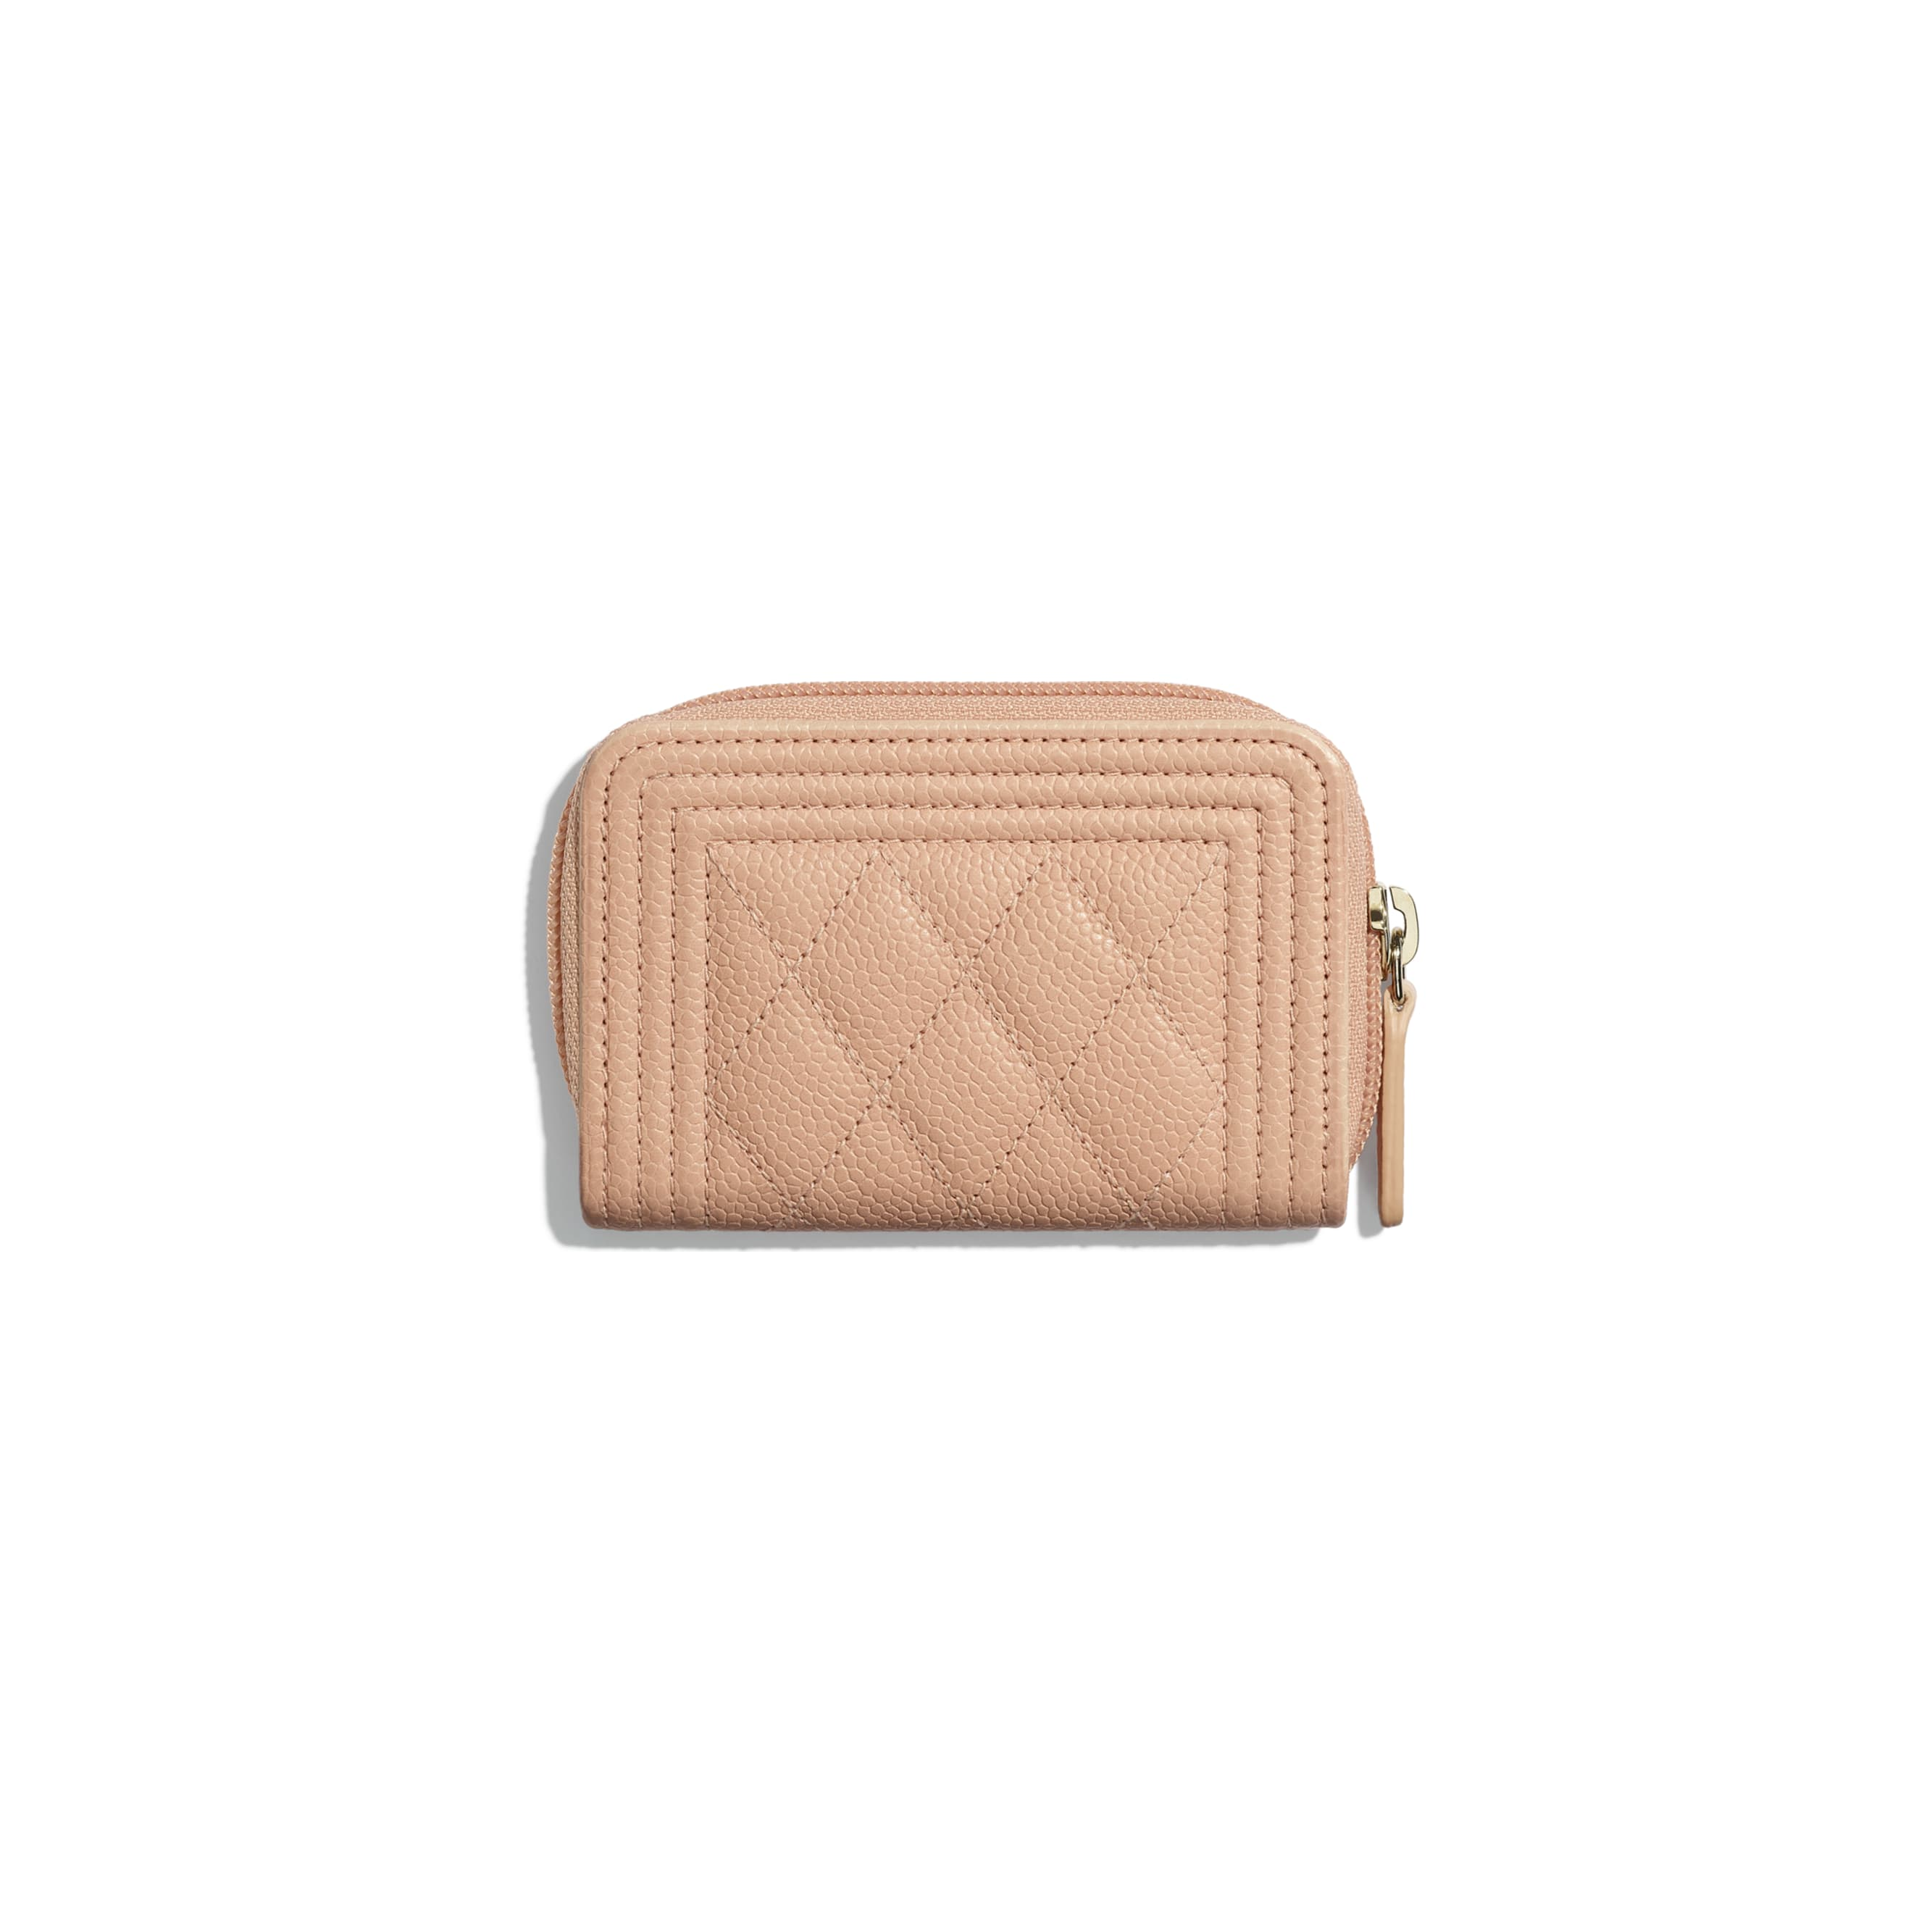 BOY CHANEL Zipped Coin Purse - Pink - Grained Calfskin & Gold-Tone Metal - CHANEL - Alternative view - see standard sized version